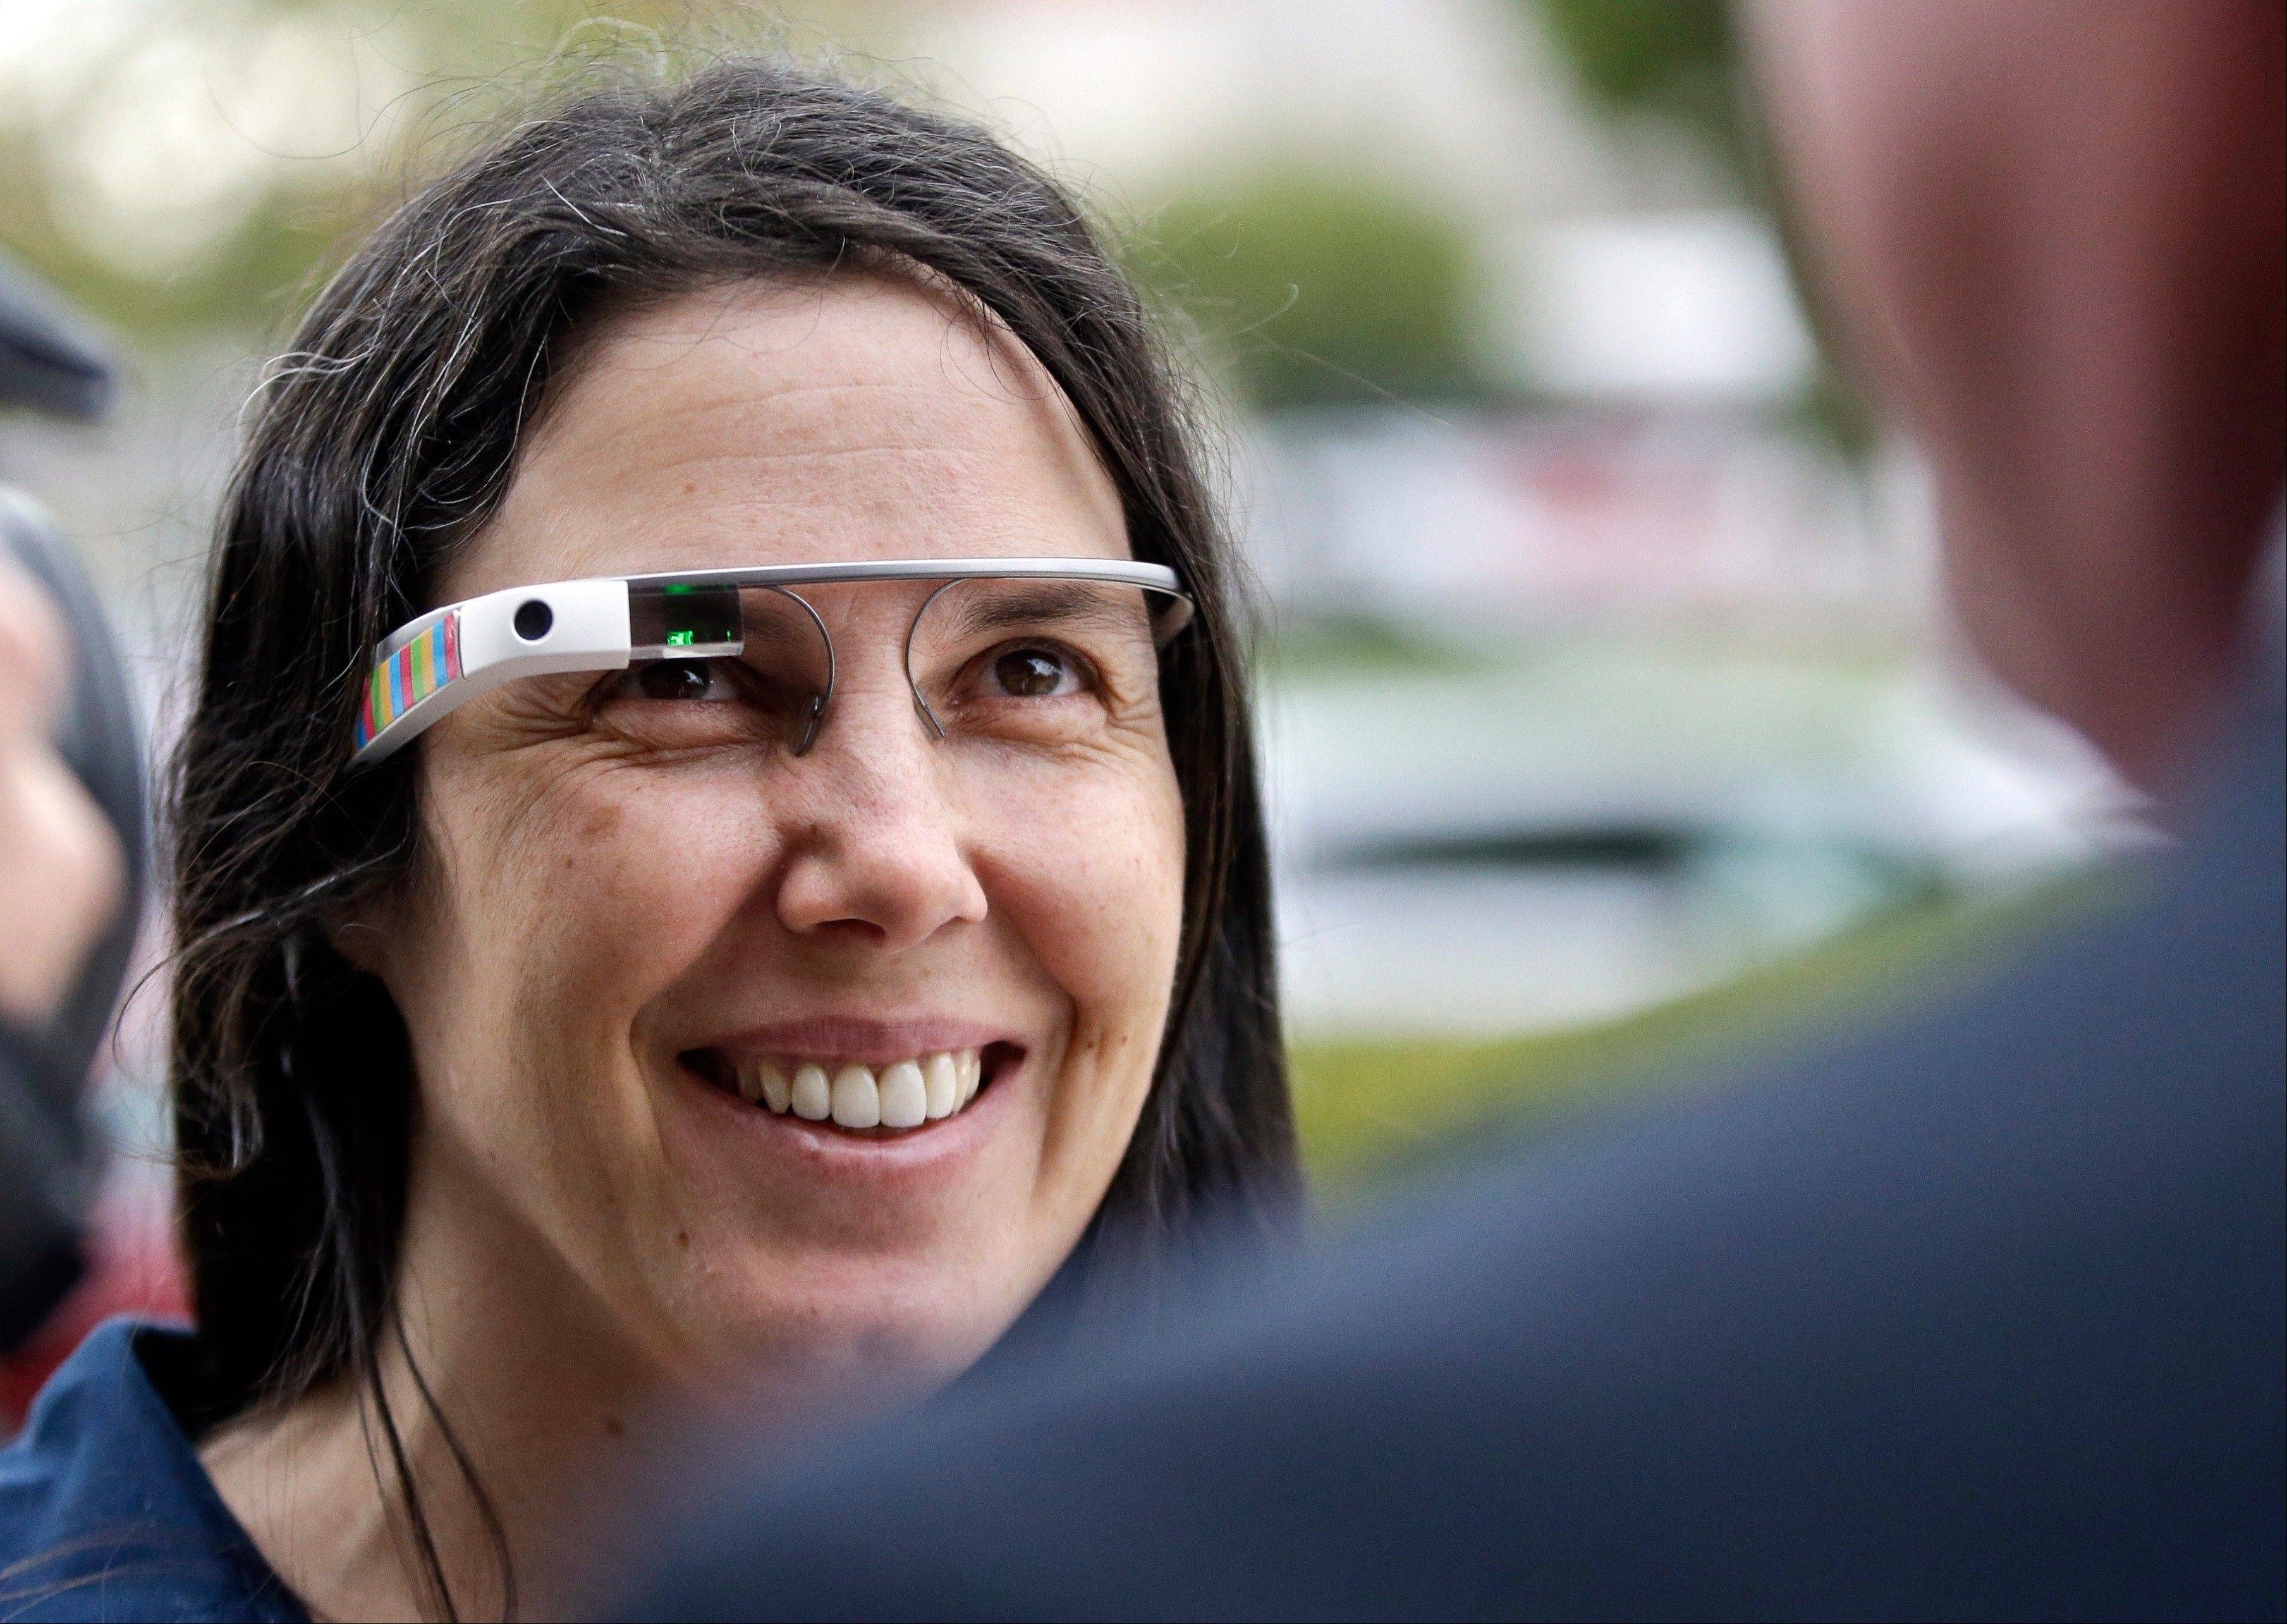 Cecilia Abadie, the California woman believed to be the first cited for wearing Google's computer-in-an-eyeglass while driving, said she was within her rights and violated no law.